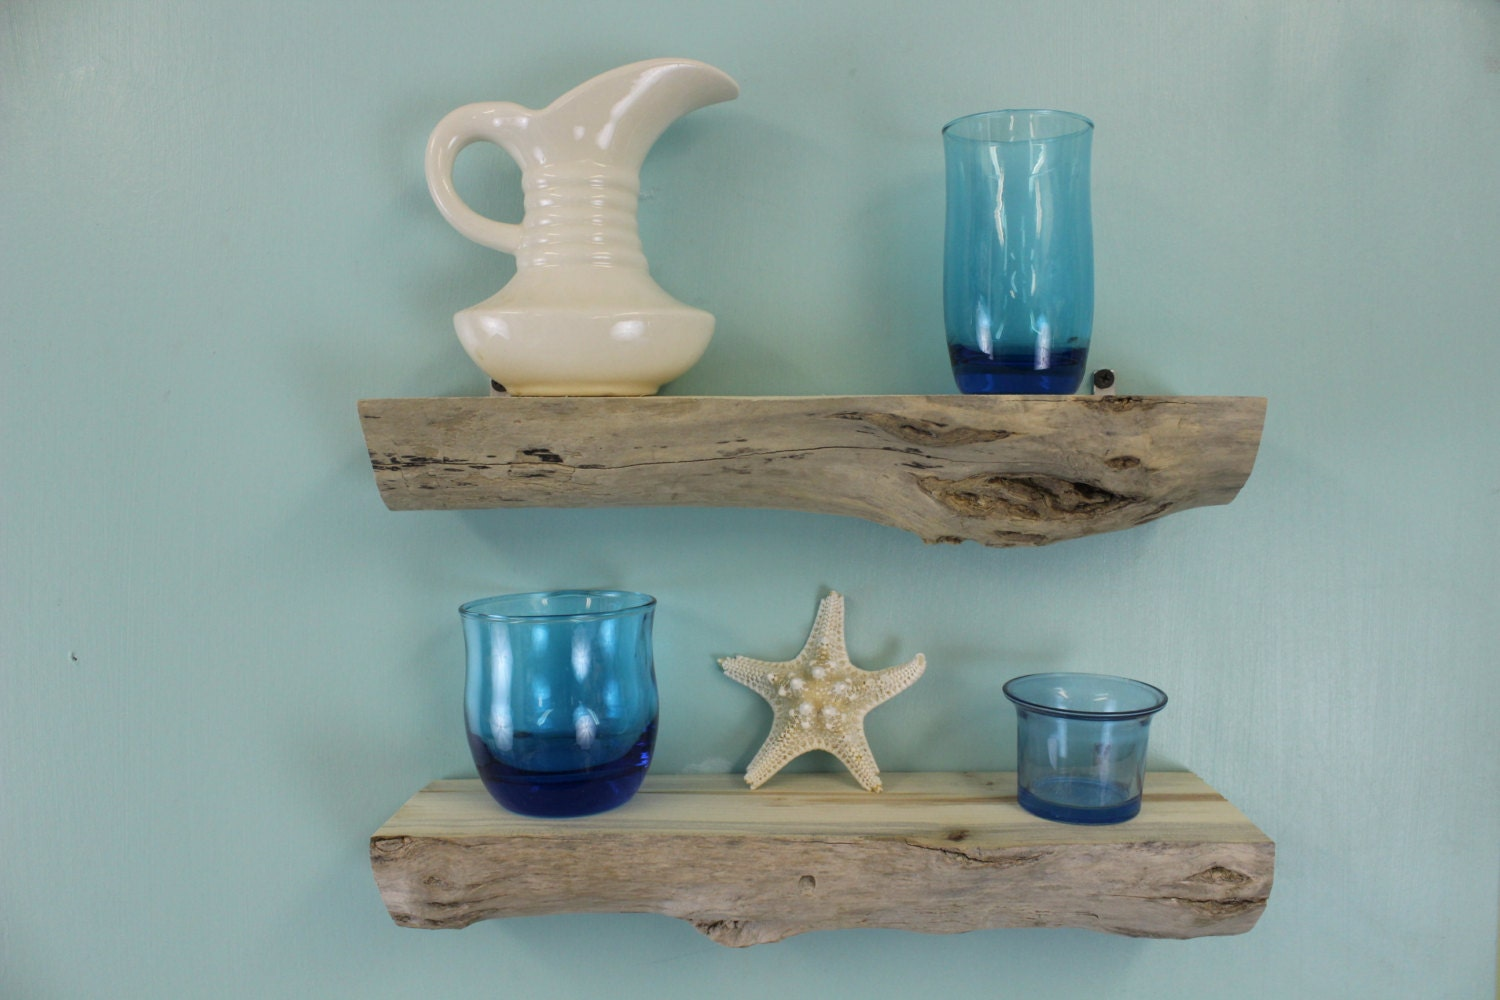 driftwood wall shelves set of 2 natural driftwood display